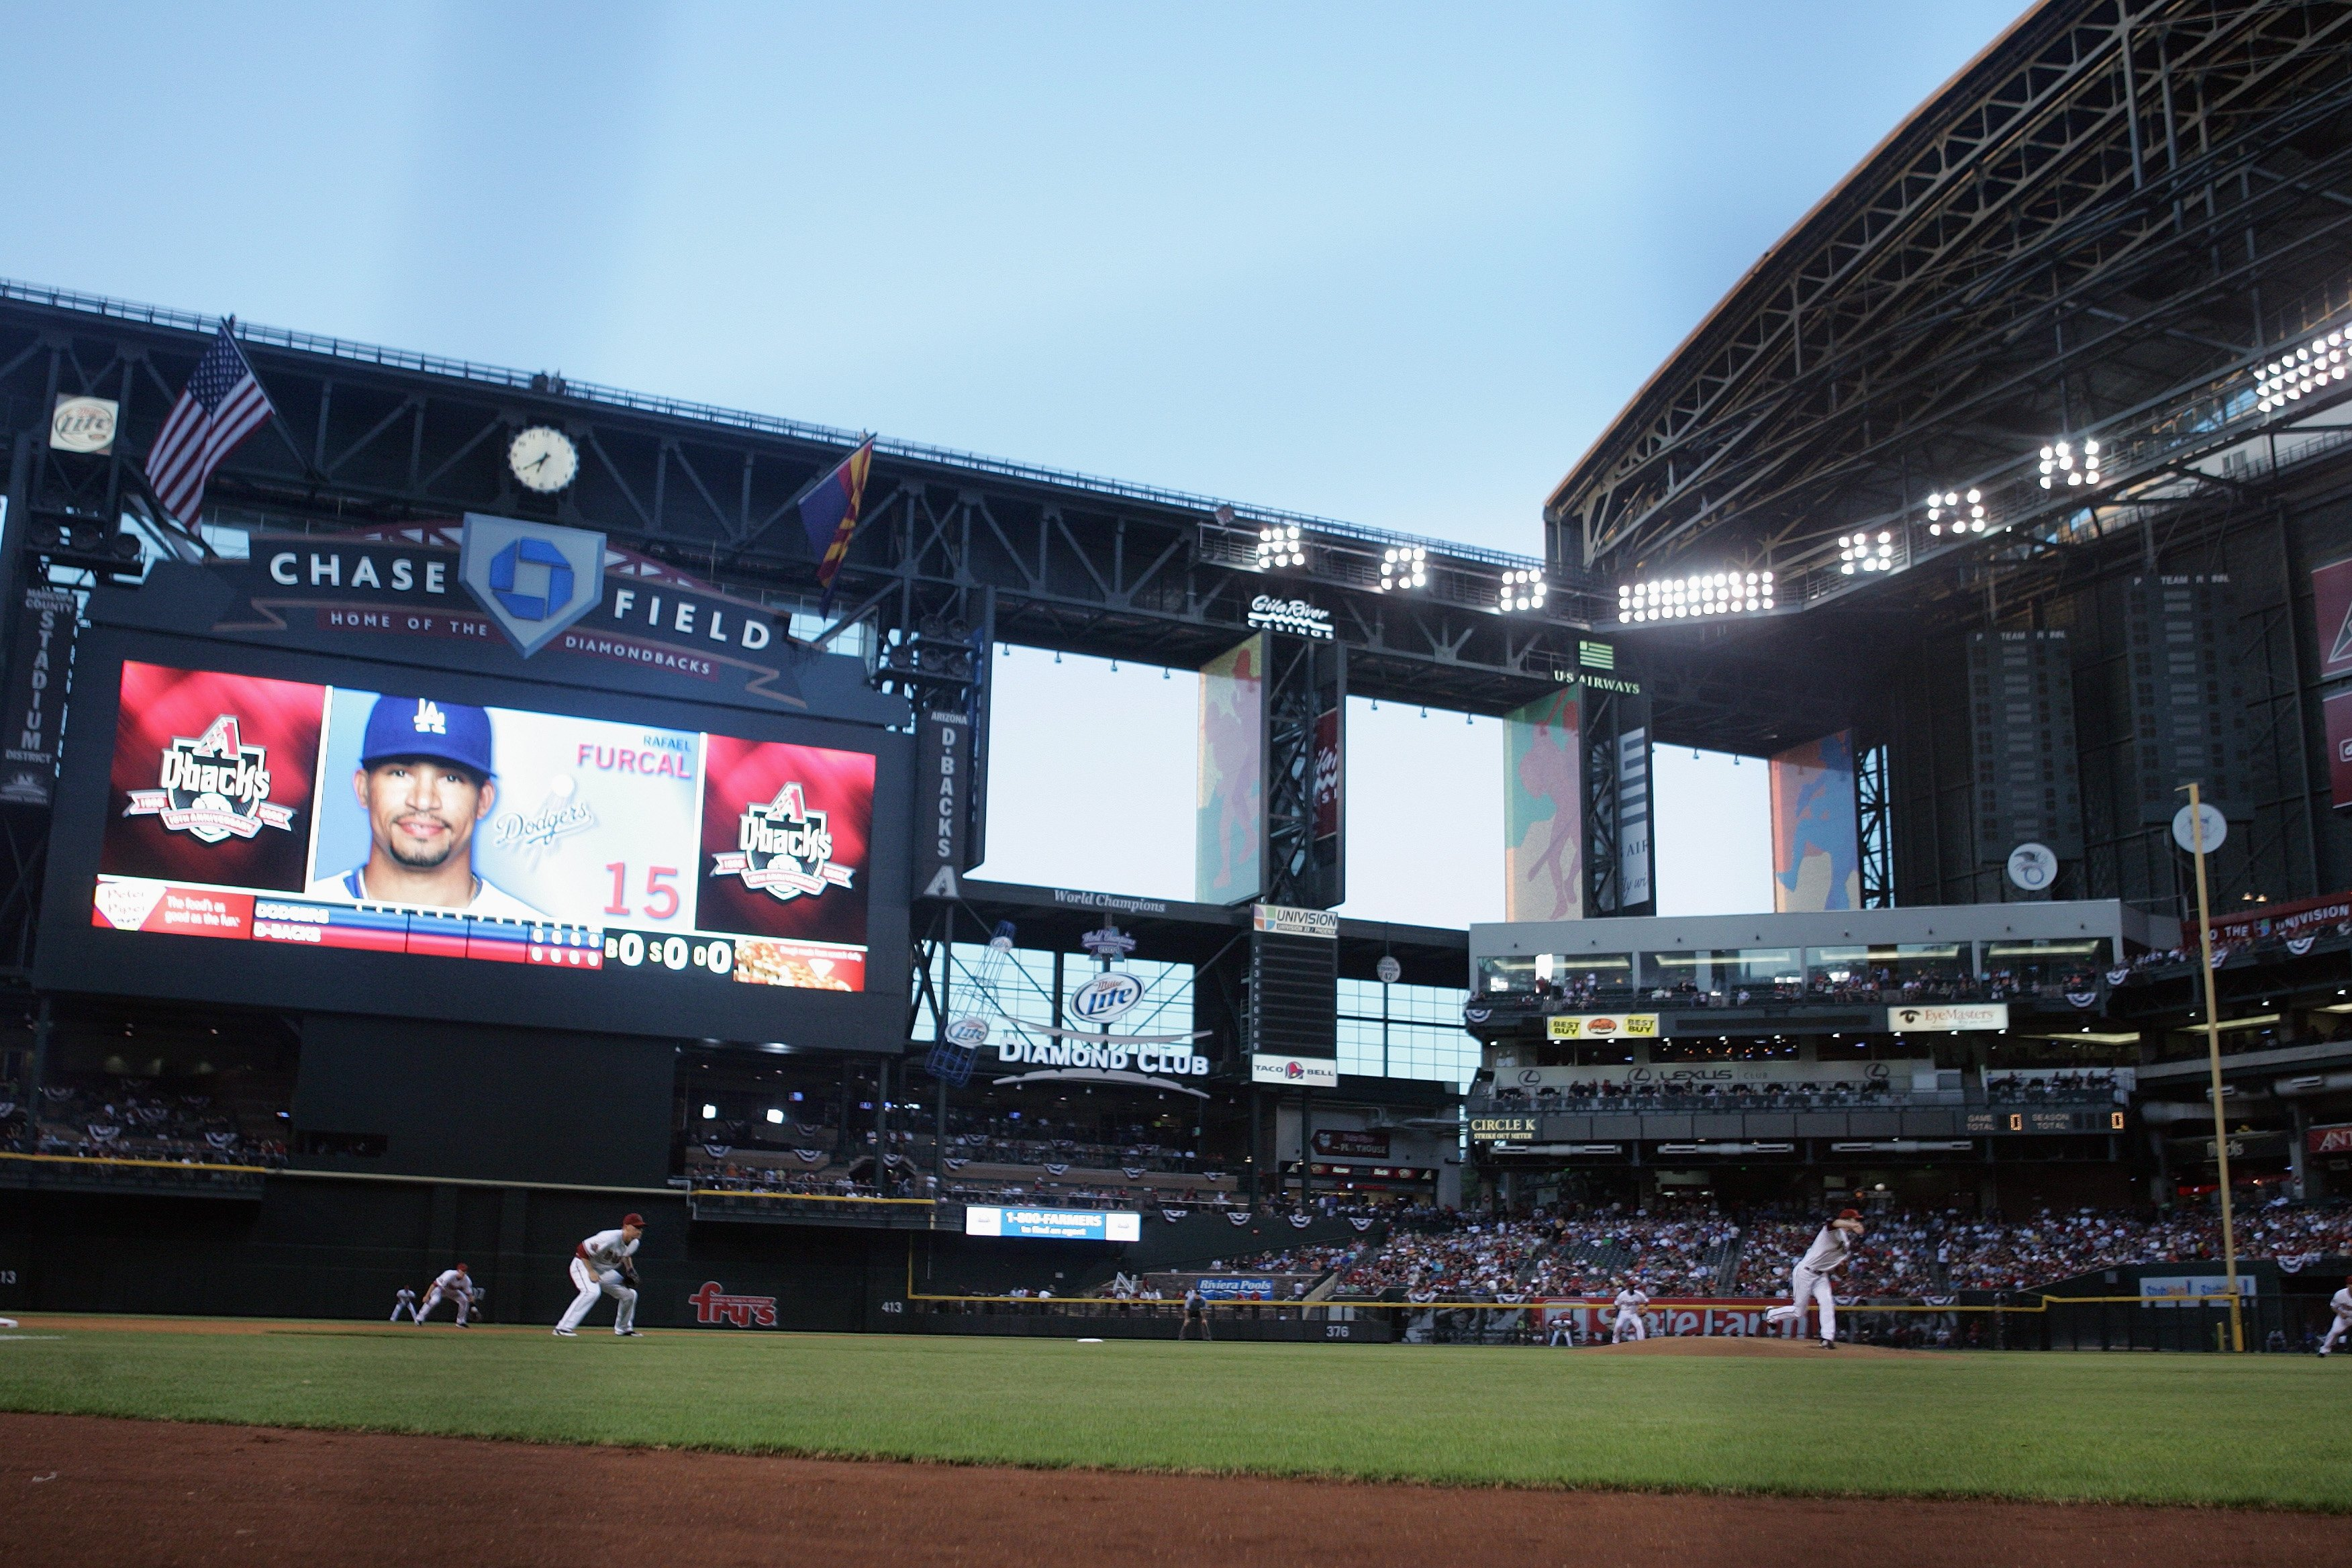 PHOENIX - APRIL 7:  A field level view of the scoreboard is shown during the first pitch of the Los Angeles Dodgers game against the Arizona Diamondbacks at Chase Field on April 7, 2008 in Phoenix, Arizona. (Photo by Jeff Gross/Getty Images)